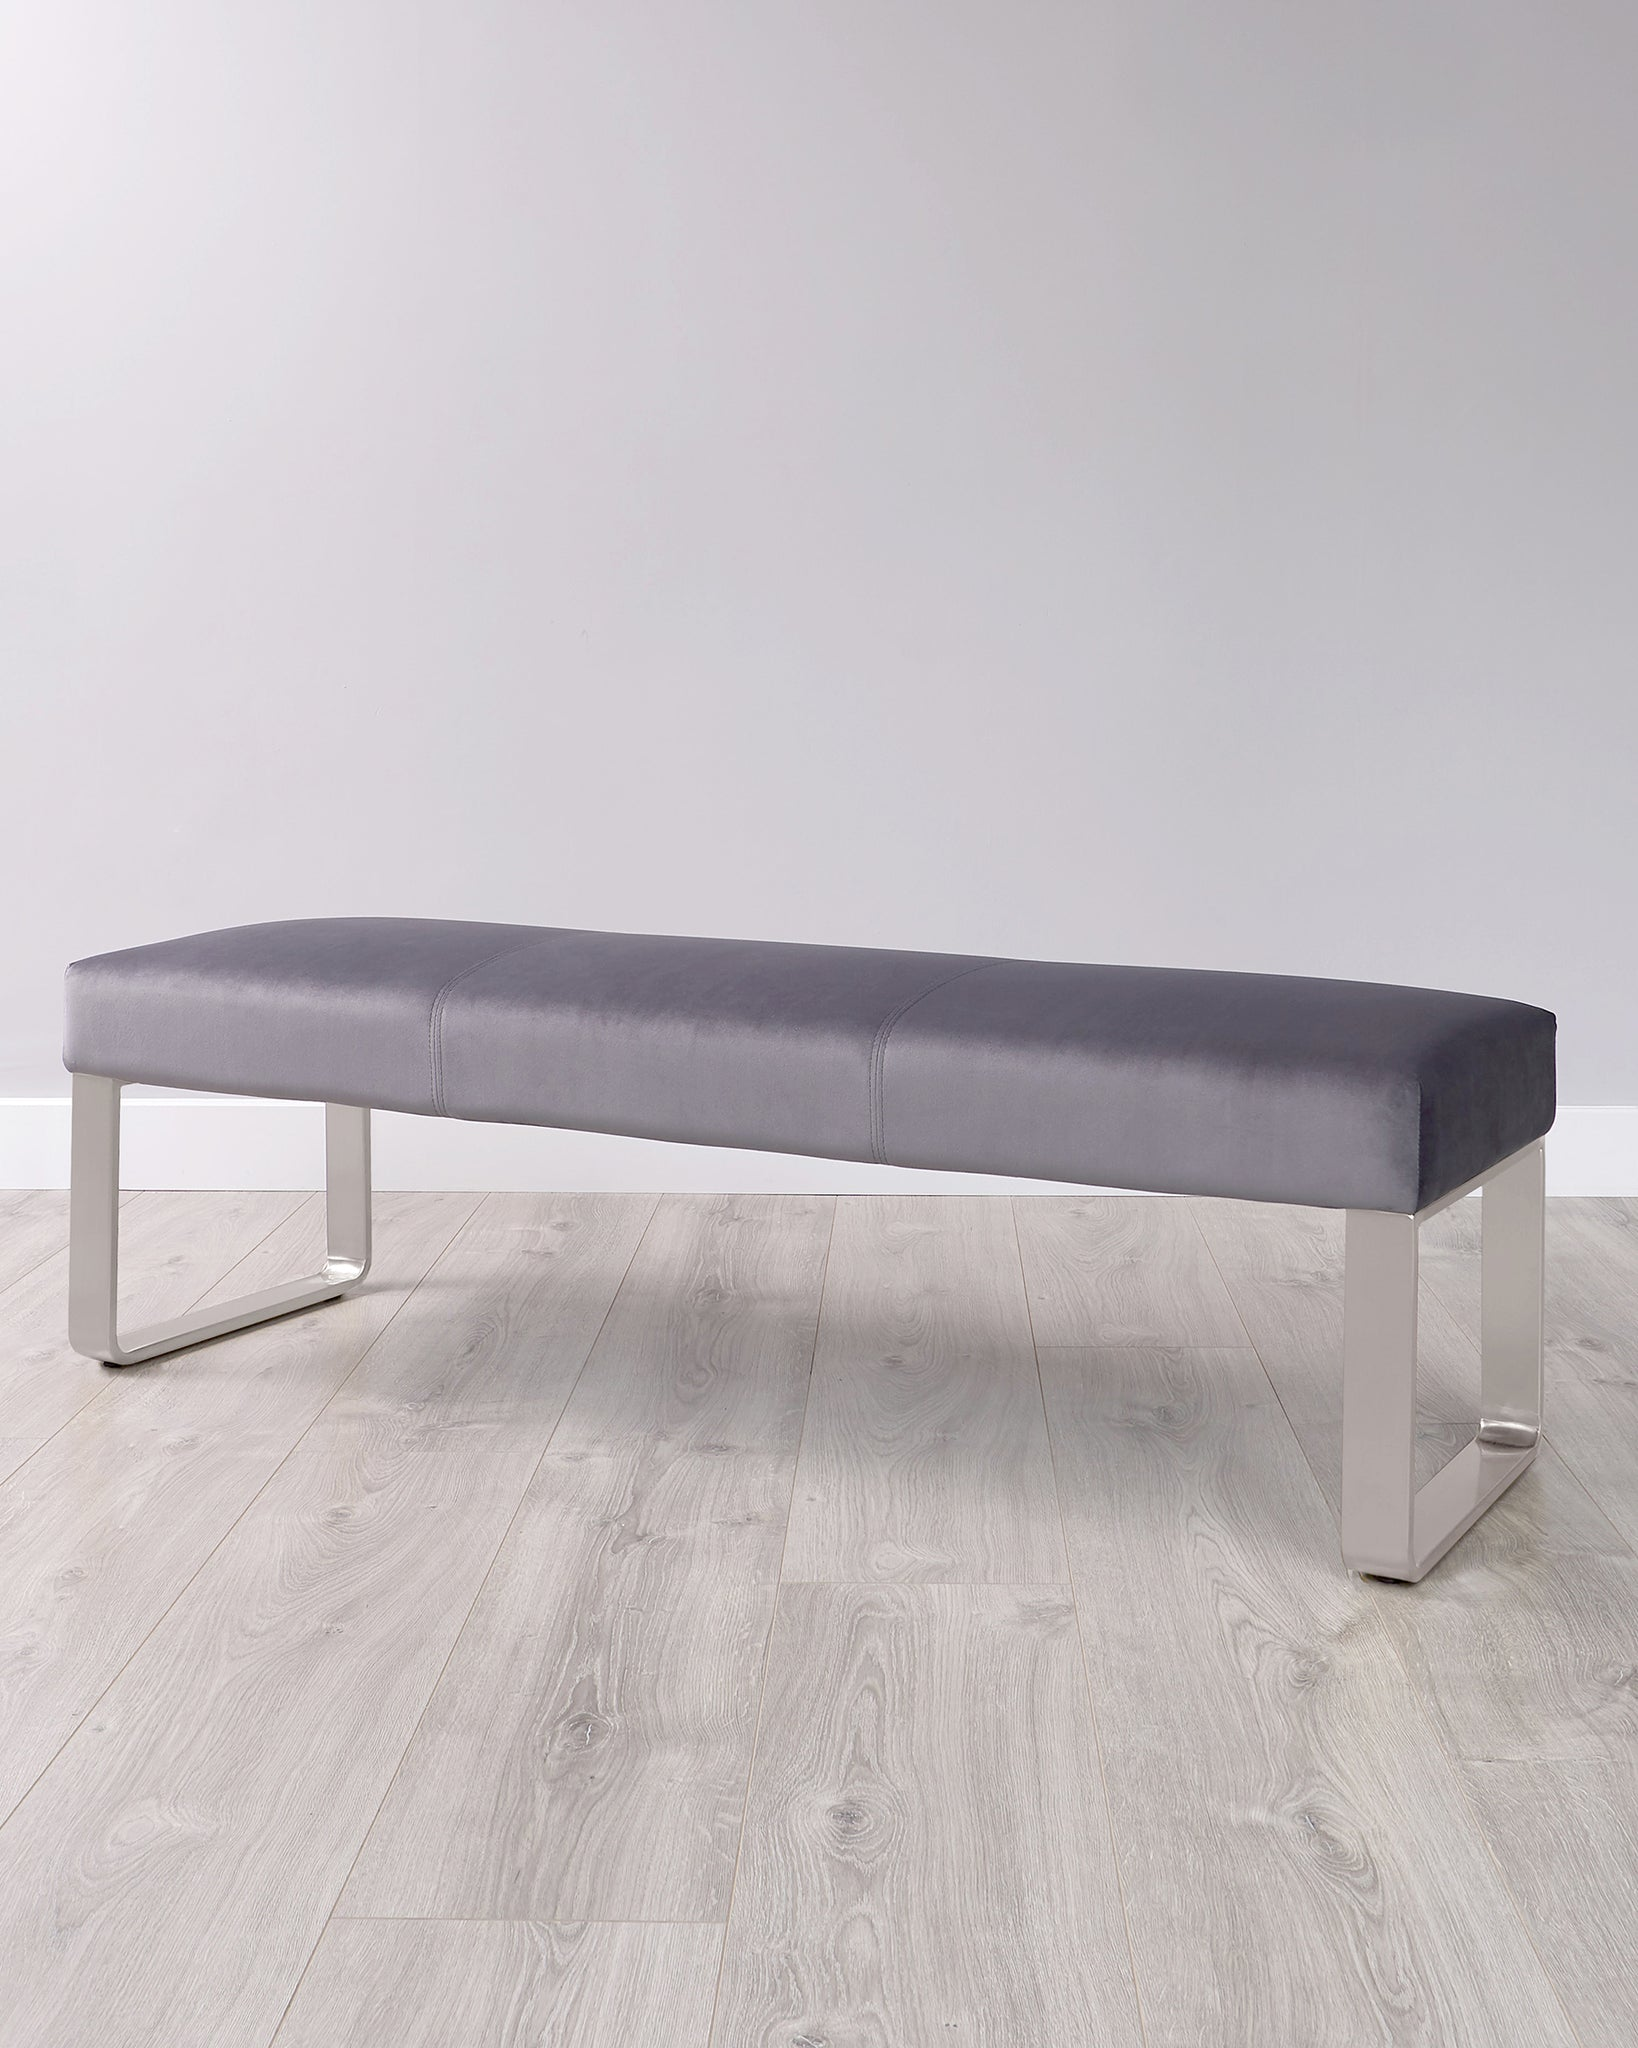 Mia Ceramic Marble And Ophelia Dining Bench Set